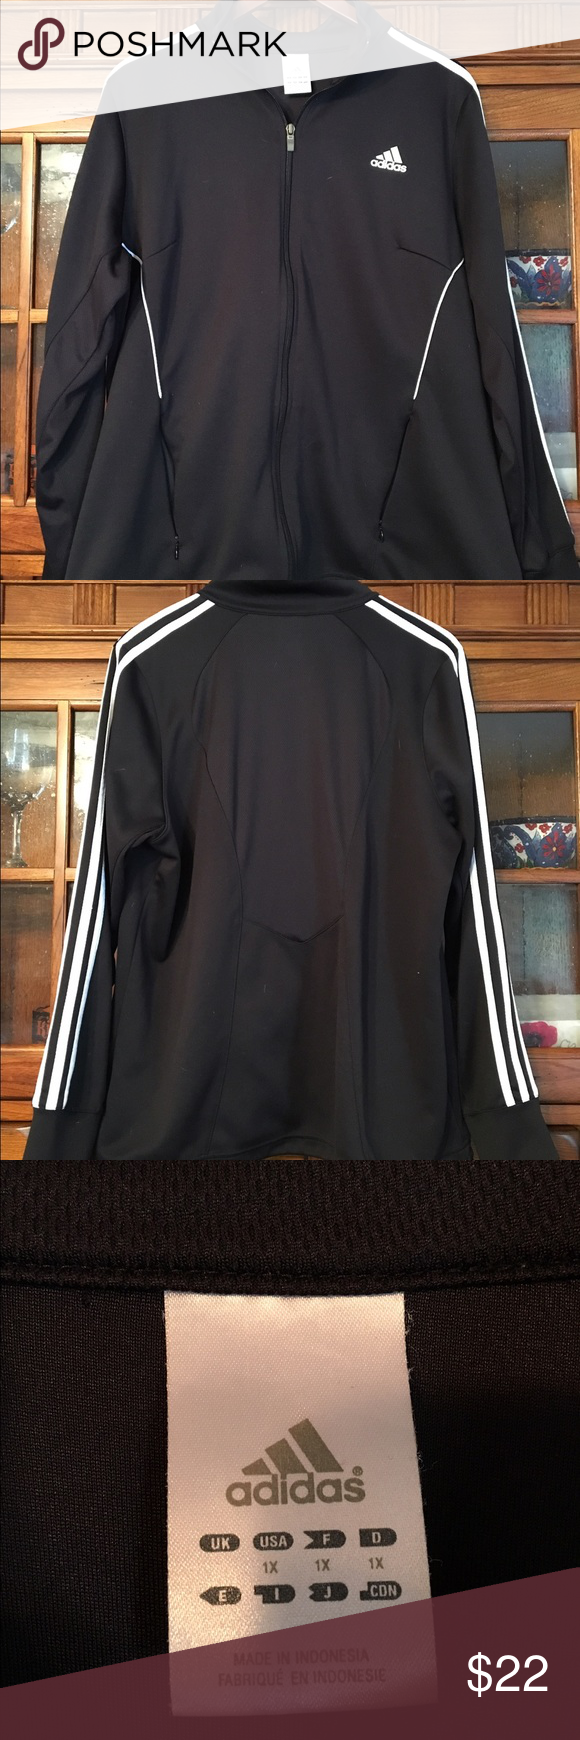 Adidas jacket Has a meshy feel to it .Only worn a few times it's too big. Adidas Other